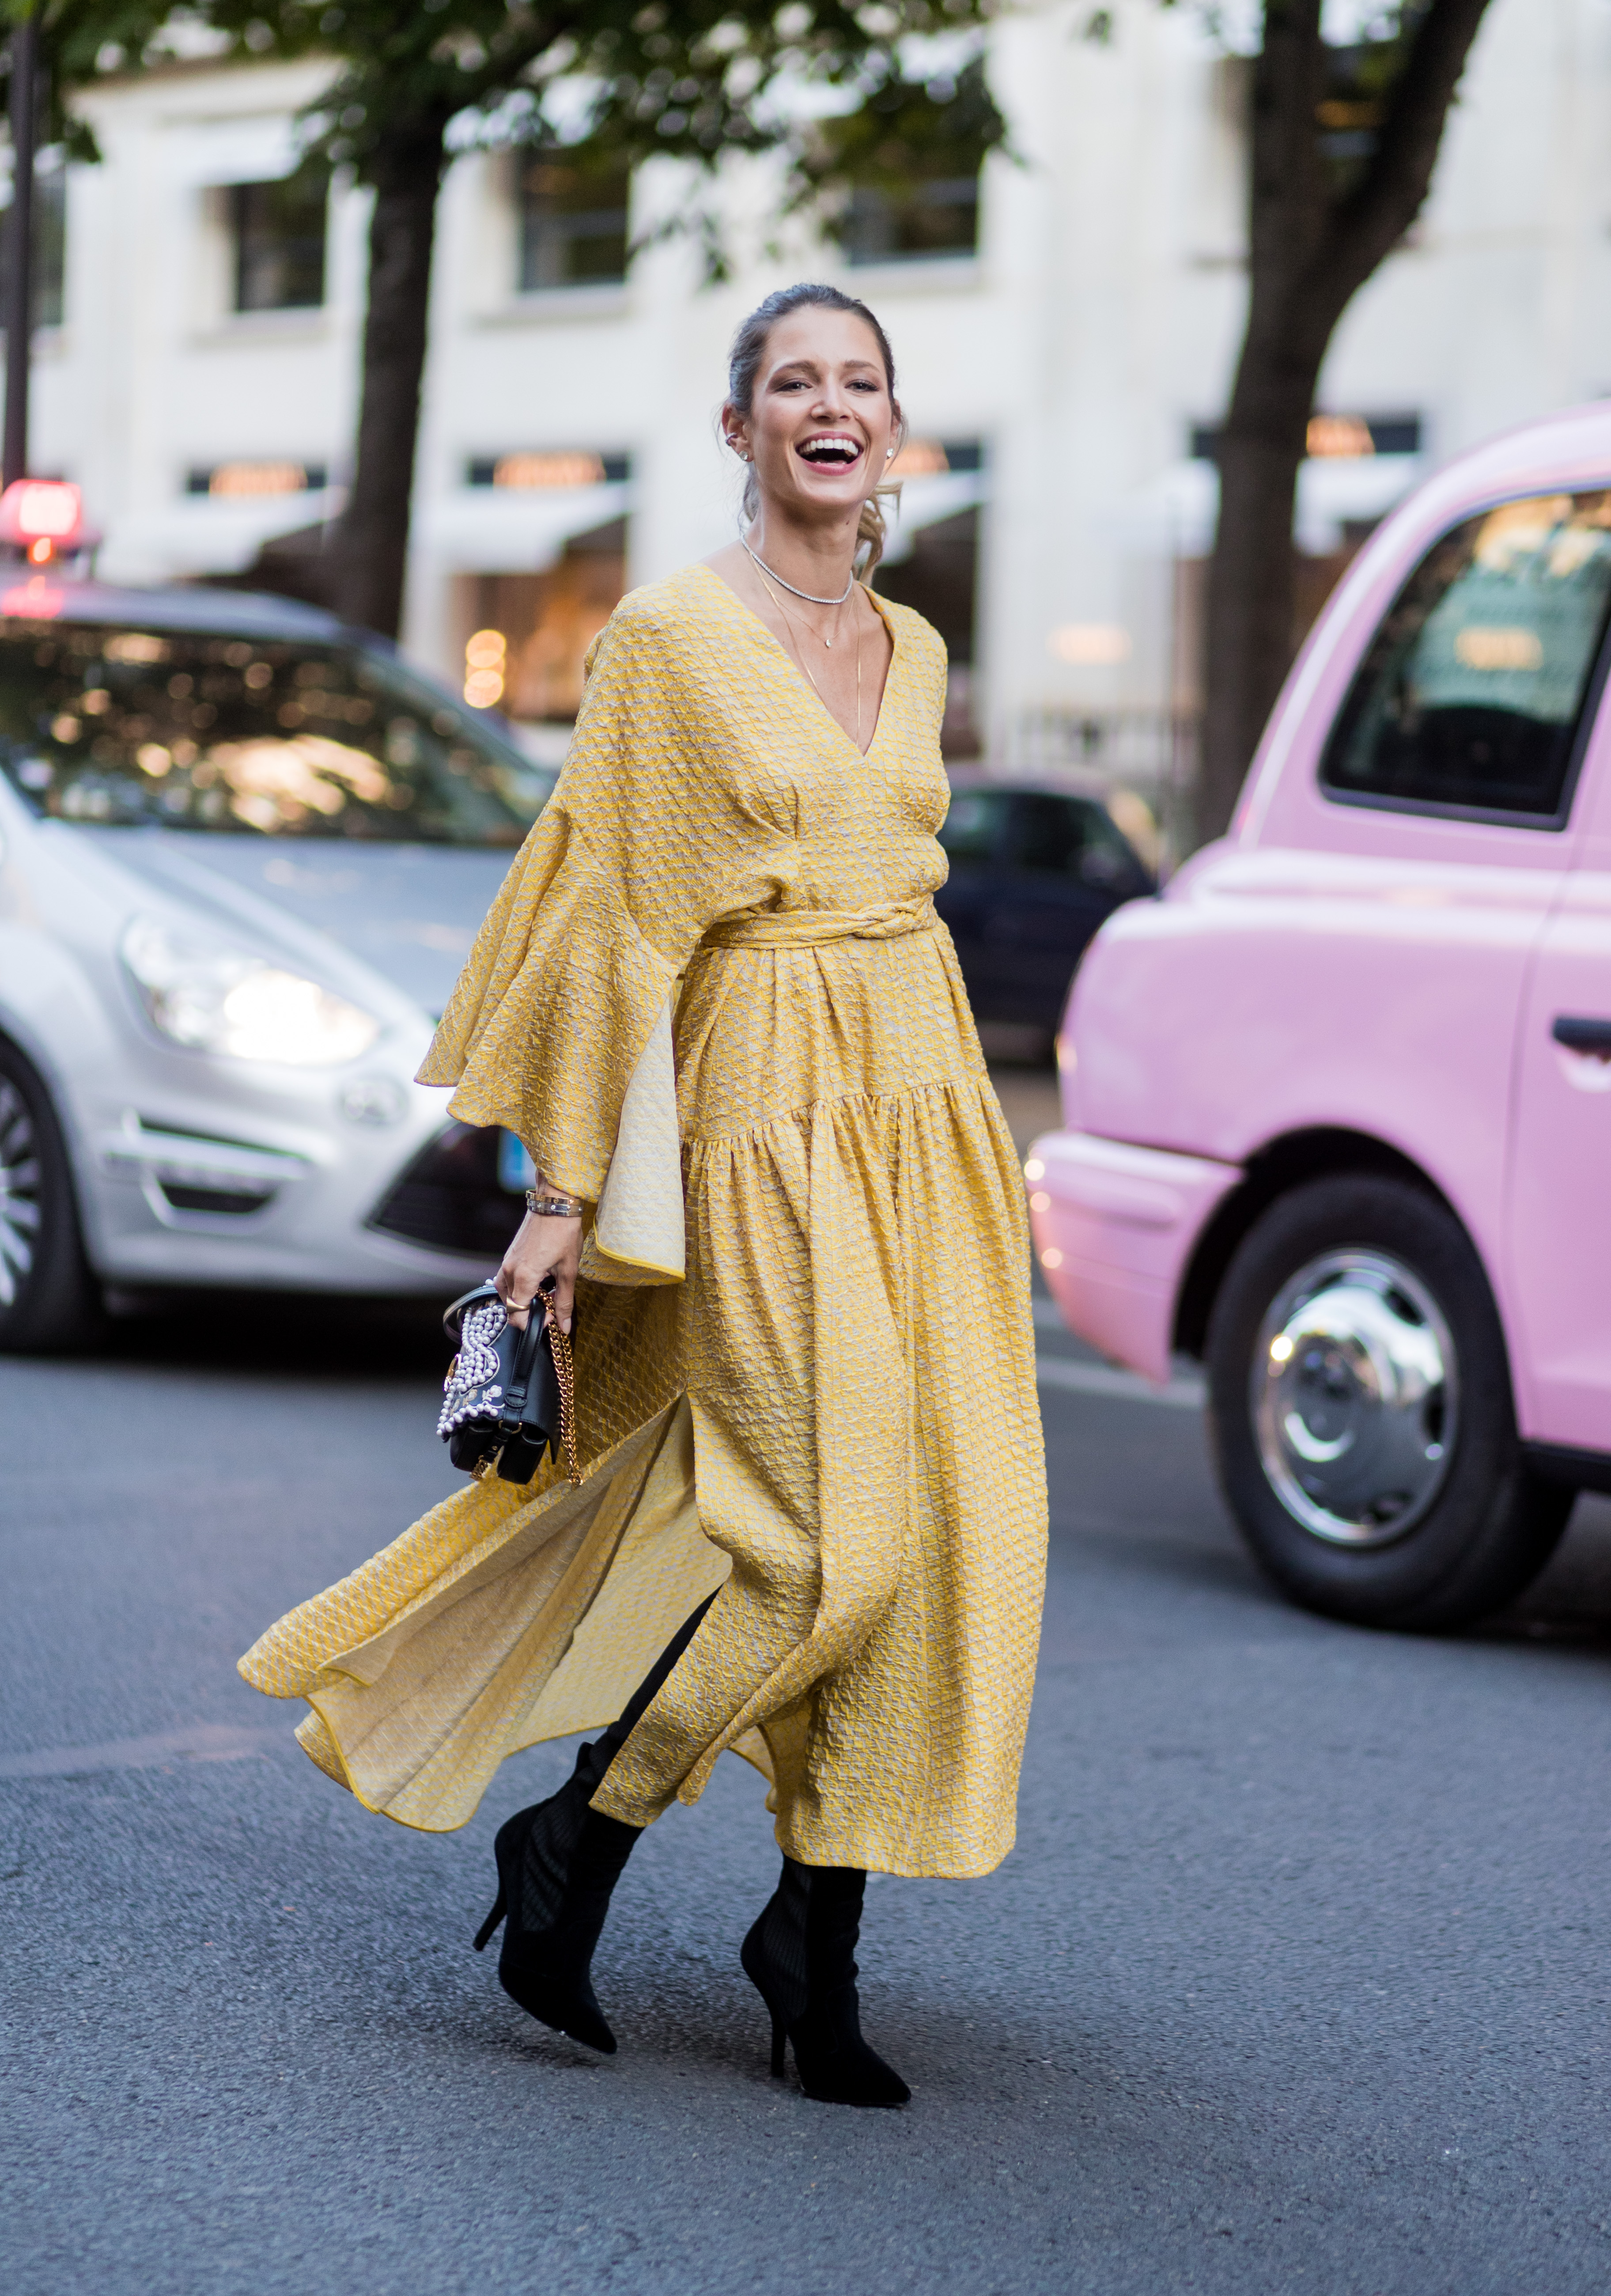 PARIS, FRANCE - JULY 05: Helena Bordon wearing a yellow dress outside Fendi during Paris Fashion Week - Haute Couture Fall/Winter 2017-2018 : Day Four on July 5, 2017 in Paris, France. (Photo by Christian Vierig/Getty Images)